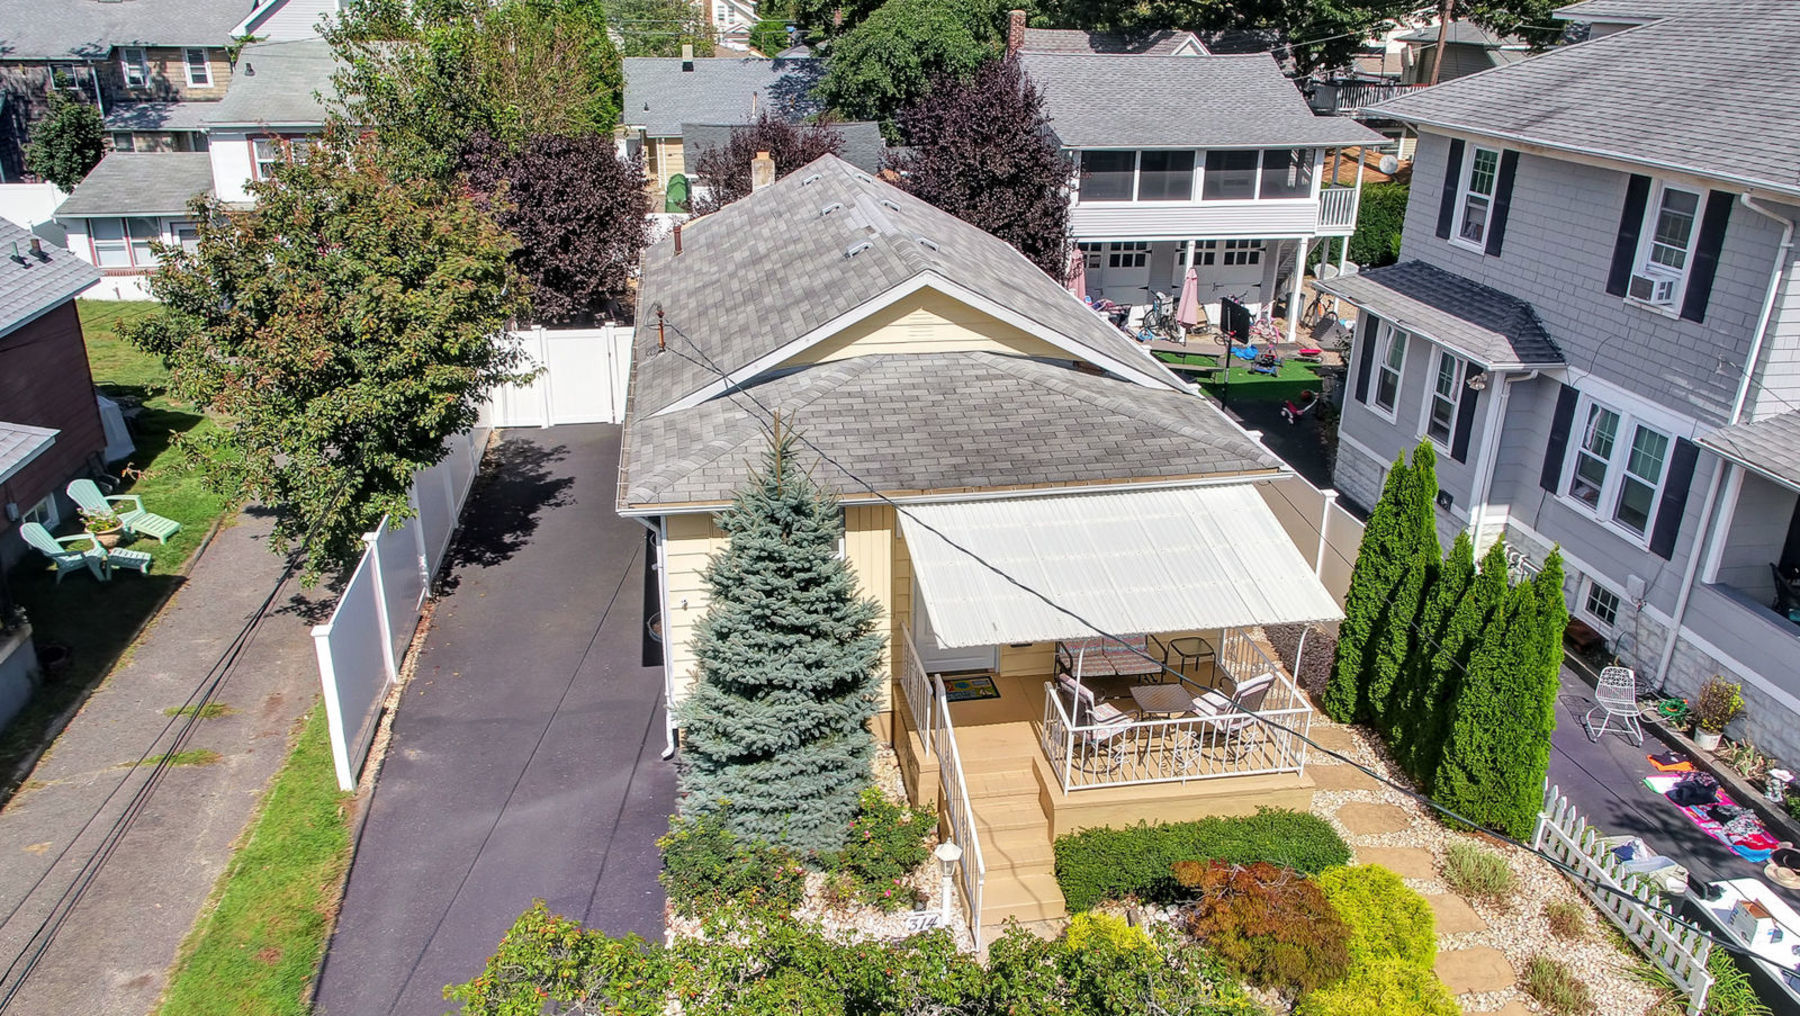 Single Family Home for Sale at Fantastic on Fifteenth 314 Fifteenth Avenue, Belmar, New Jersey 07719 United States